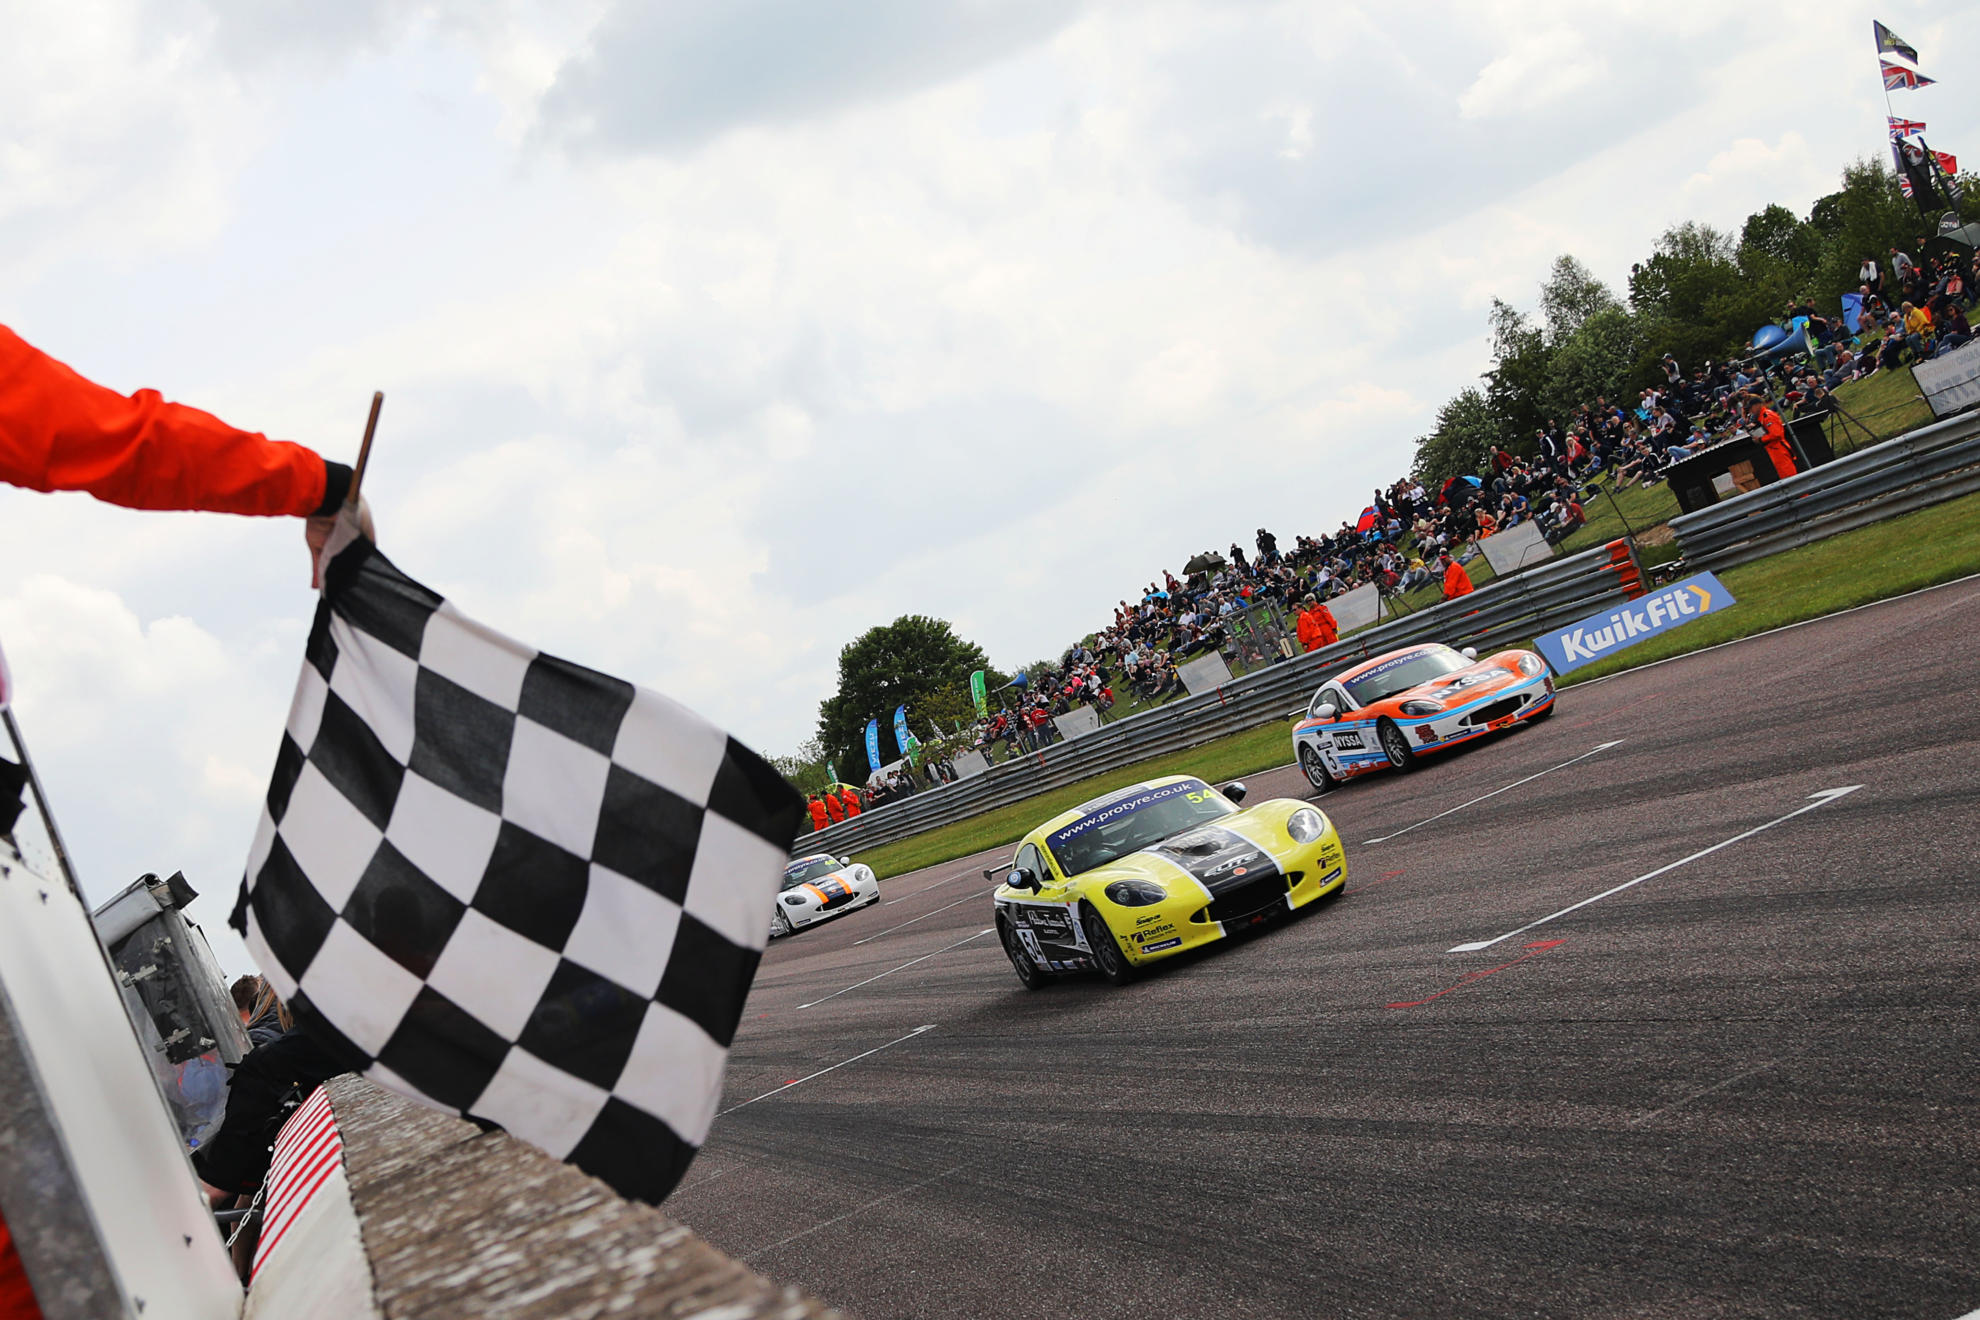 Thruxton Delight For Nicosia And Smalley With Protyre Motorsport Ginetta GT5 Challenge Victories